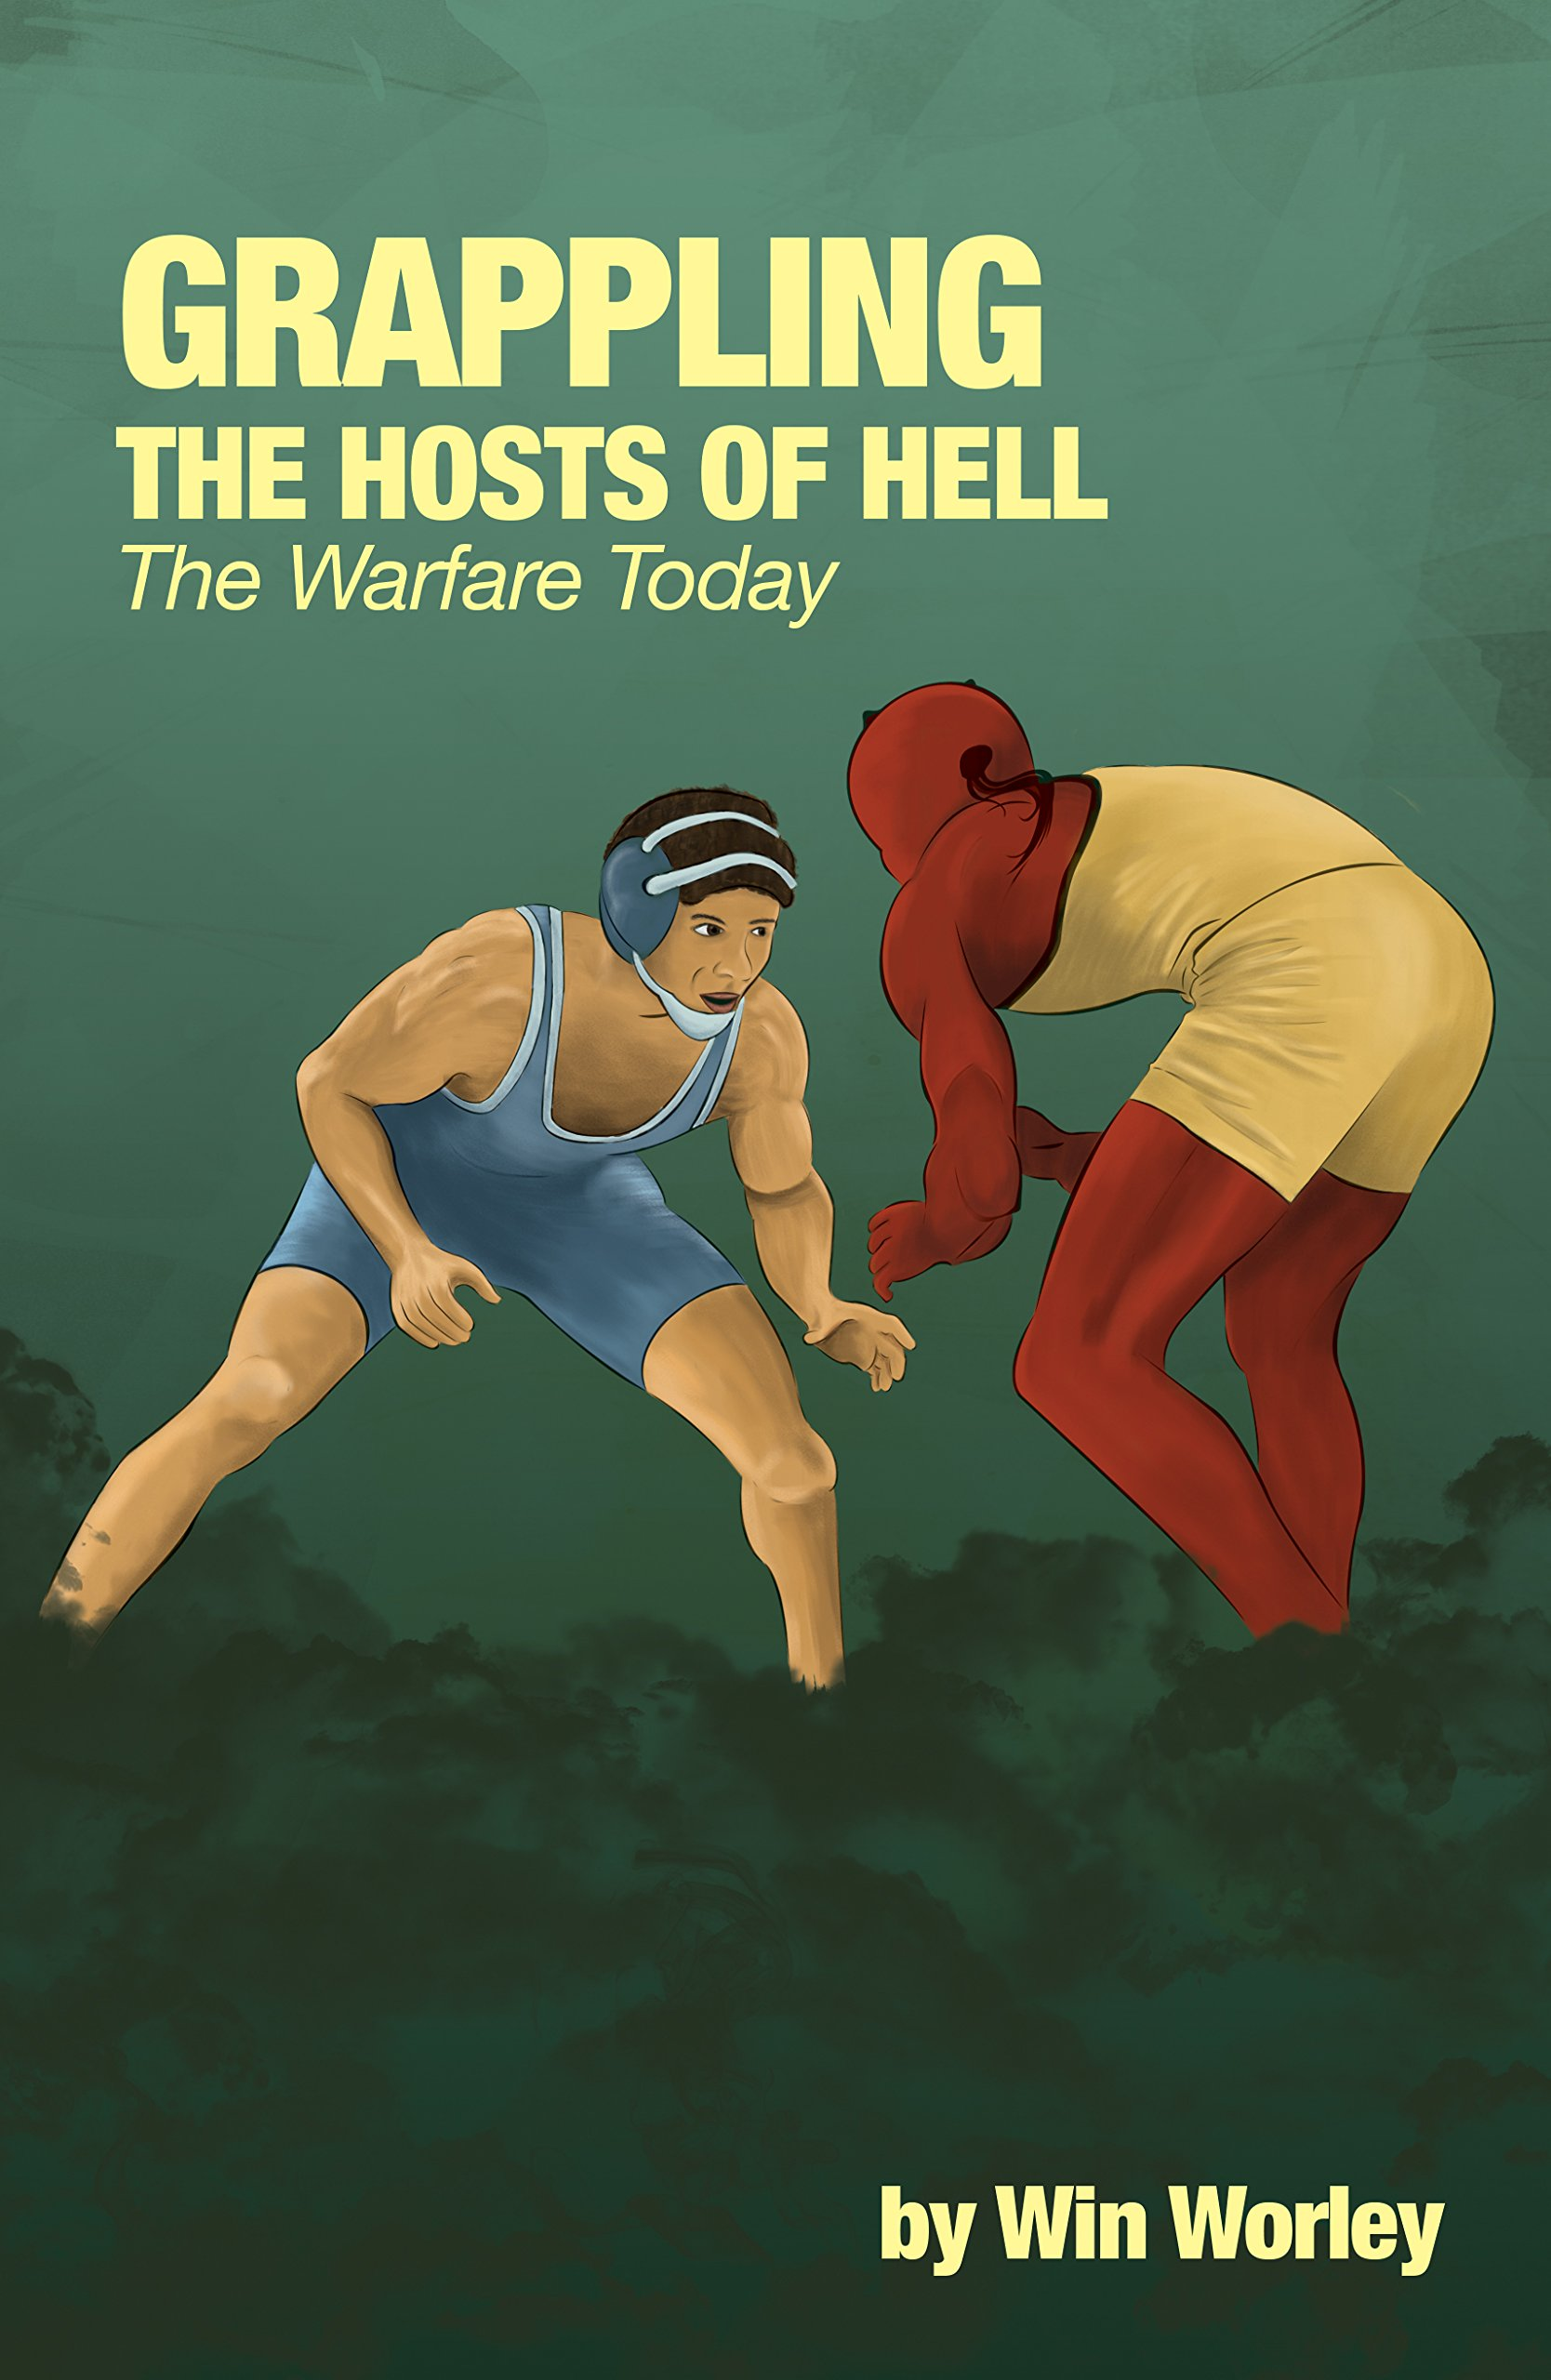 ANNIHILATING THE HOSTS OF HELL BY WIN WORLEY PDF